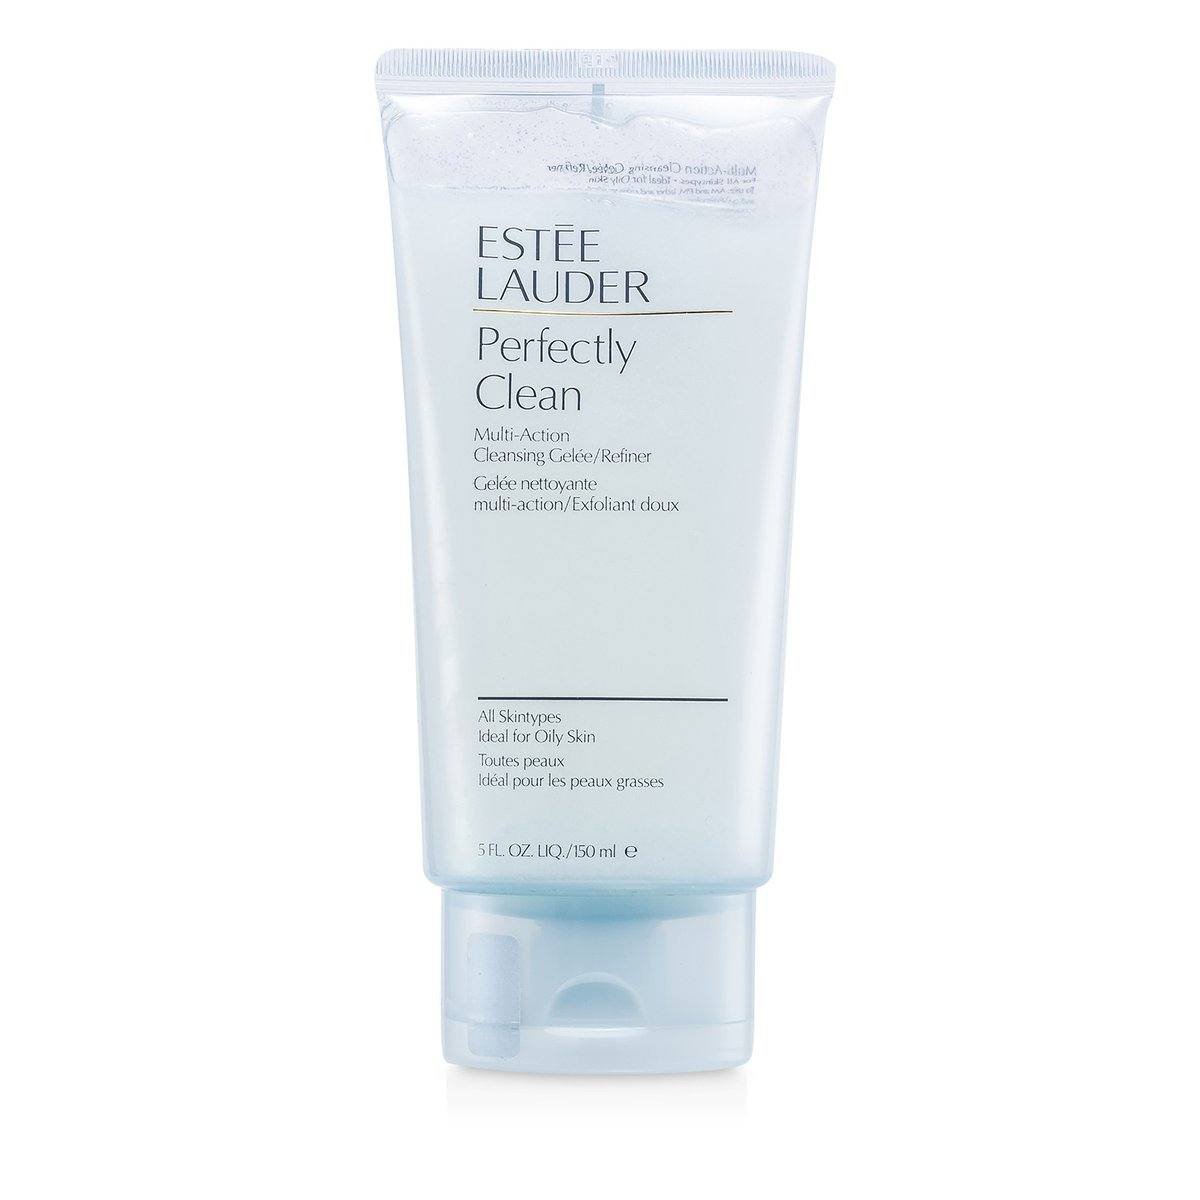 Perfectly Clean Multi-Action Cleansing Gelee/Refiner by Estée Lauder #20